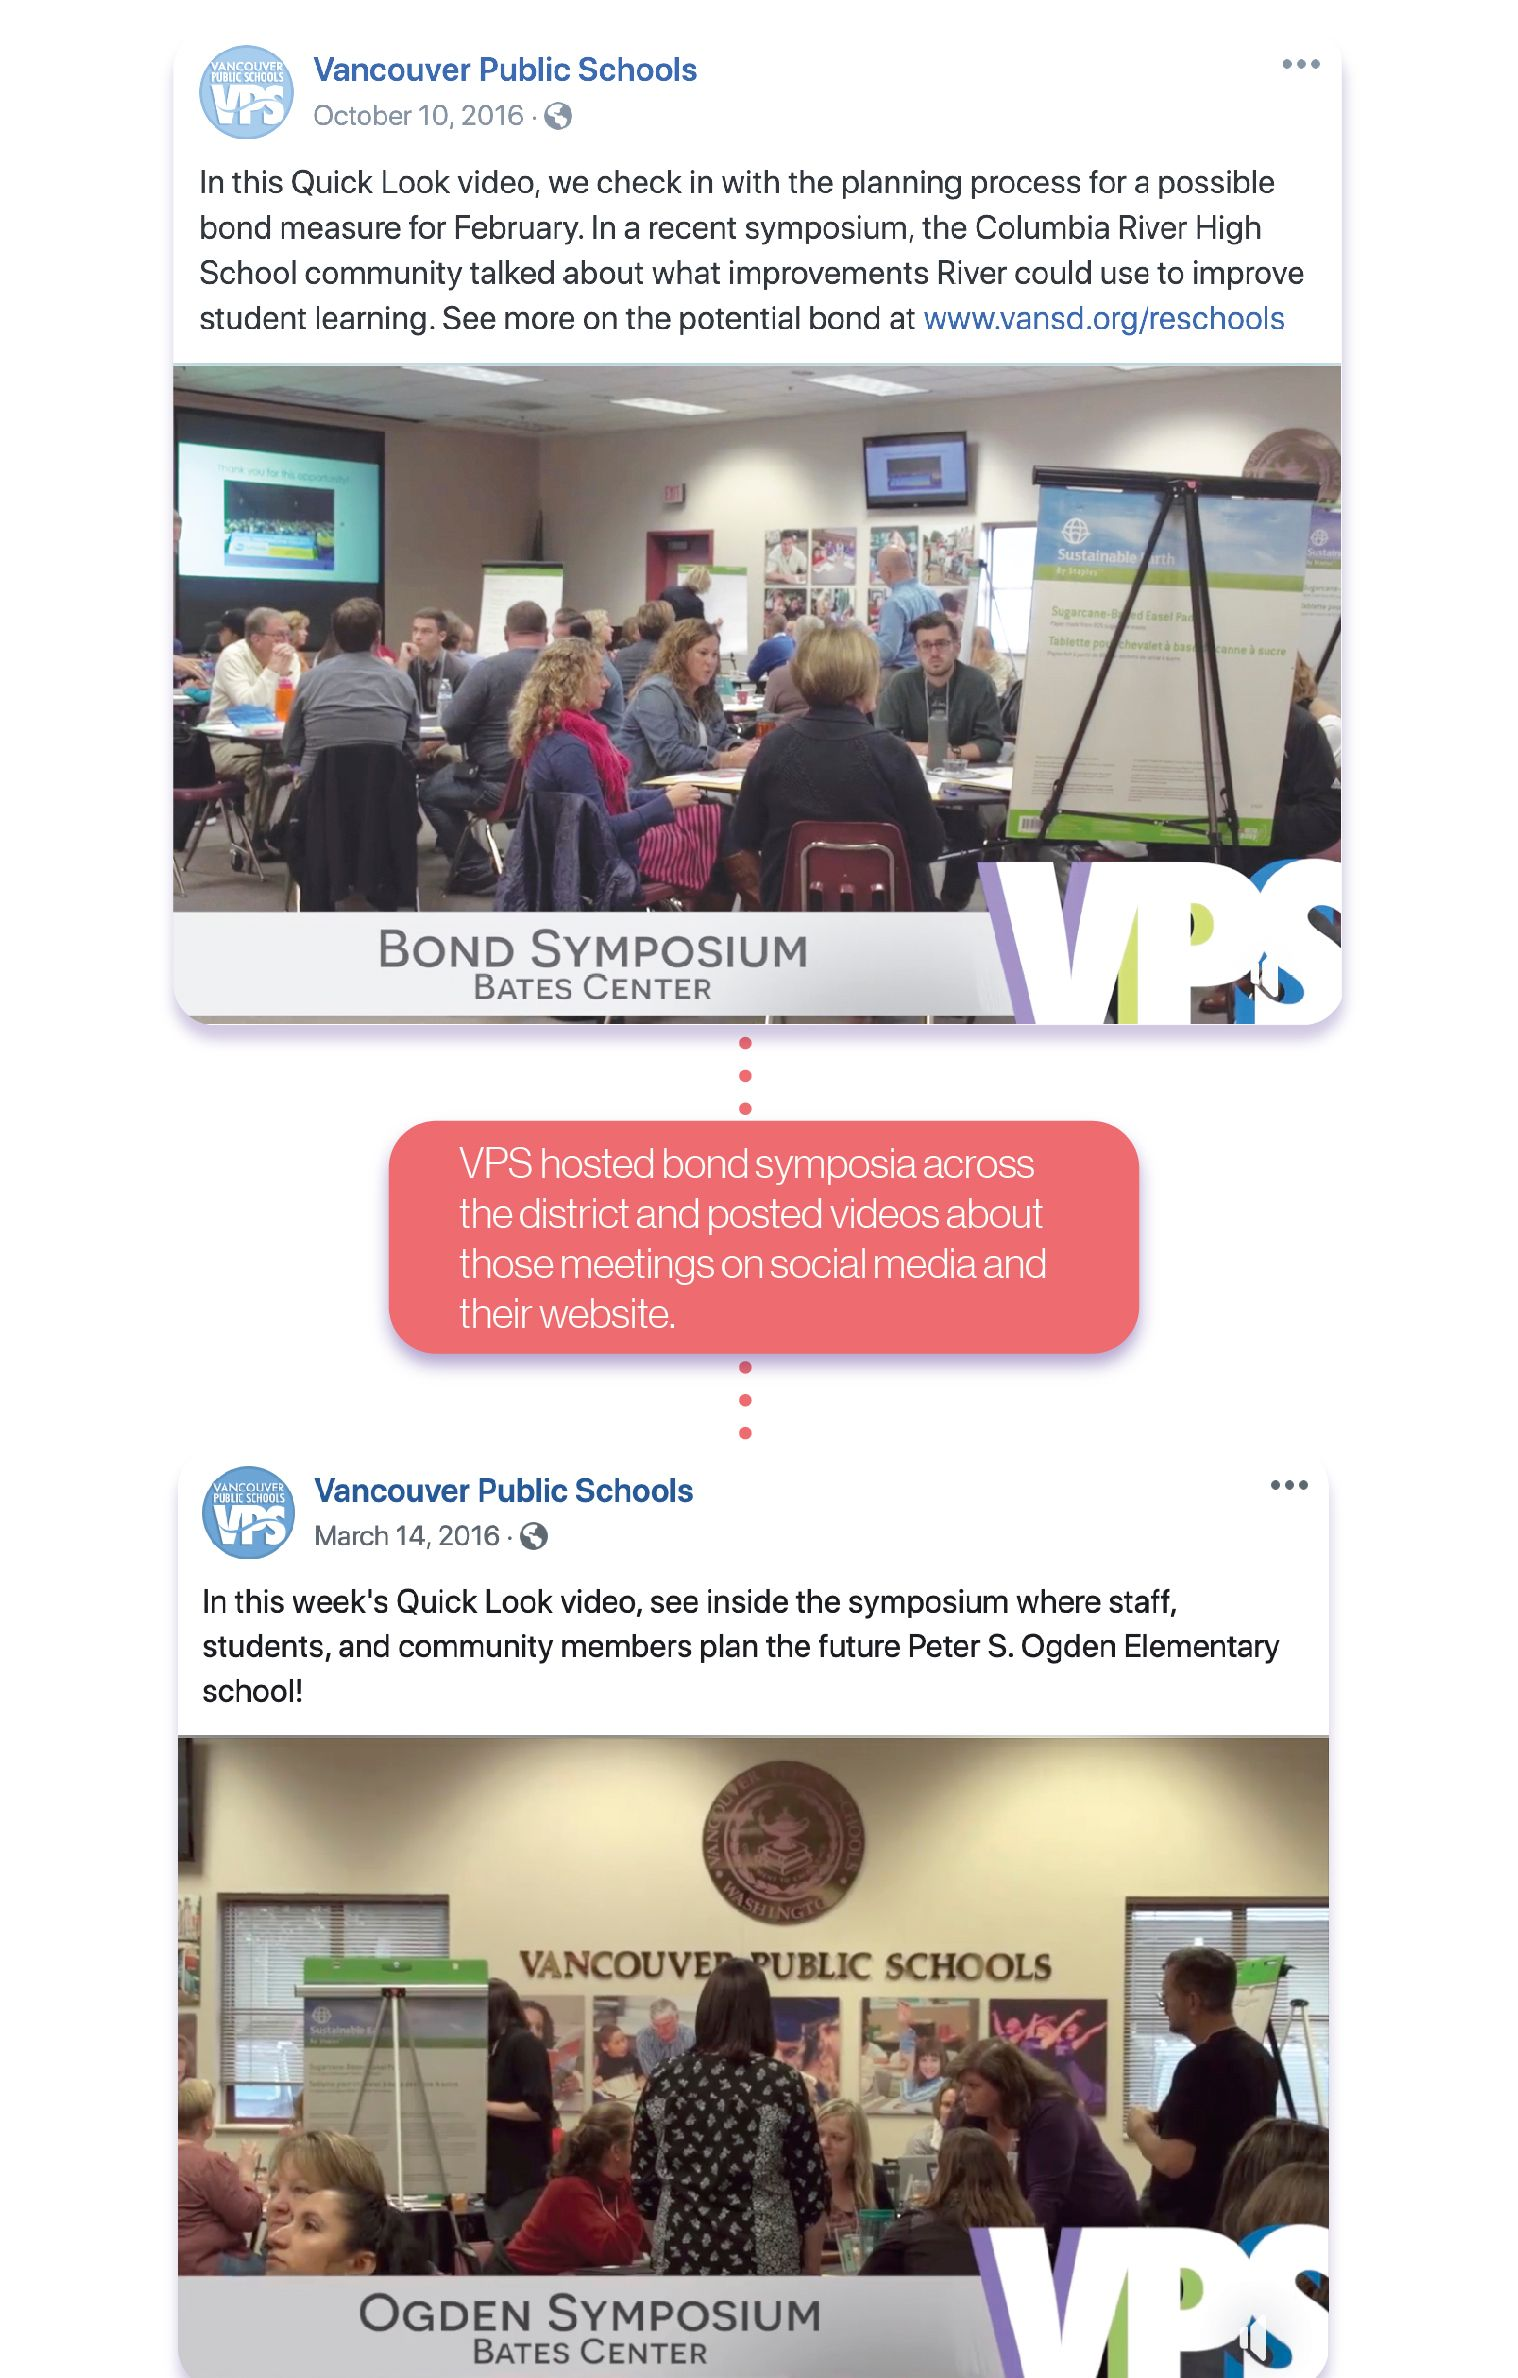 VPS hosted listening symposia across the district and then published photos and videos of the symposia online. Pictures showcase community conversations.